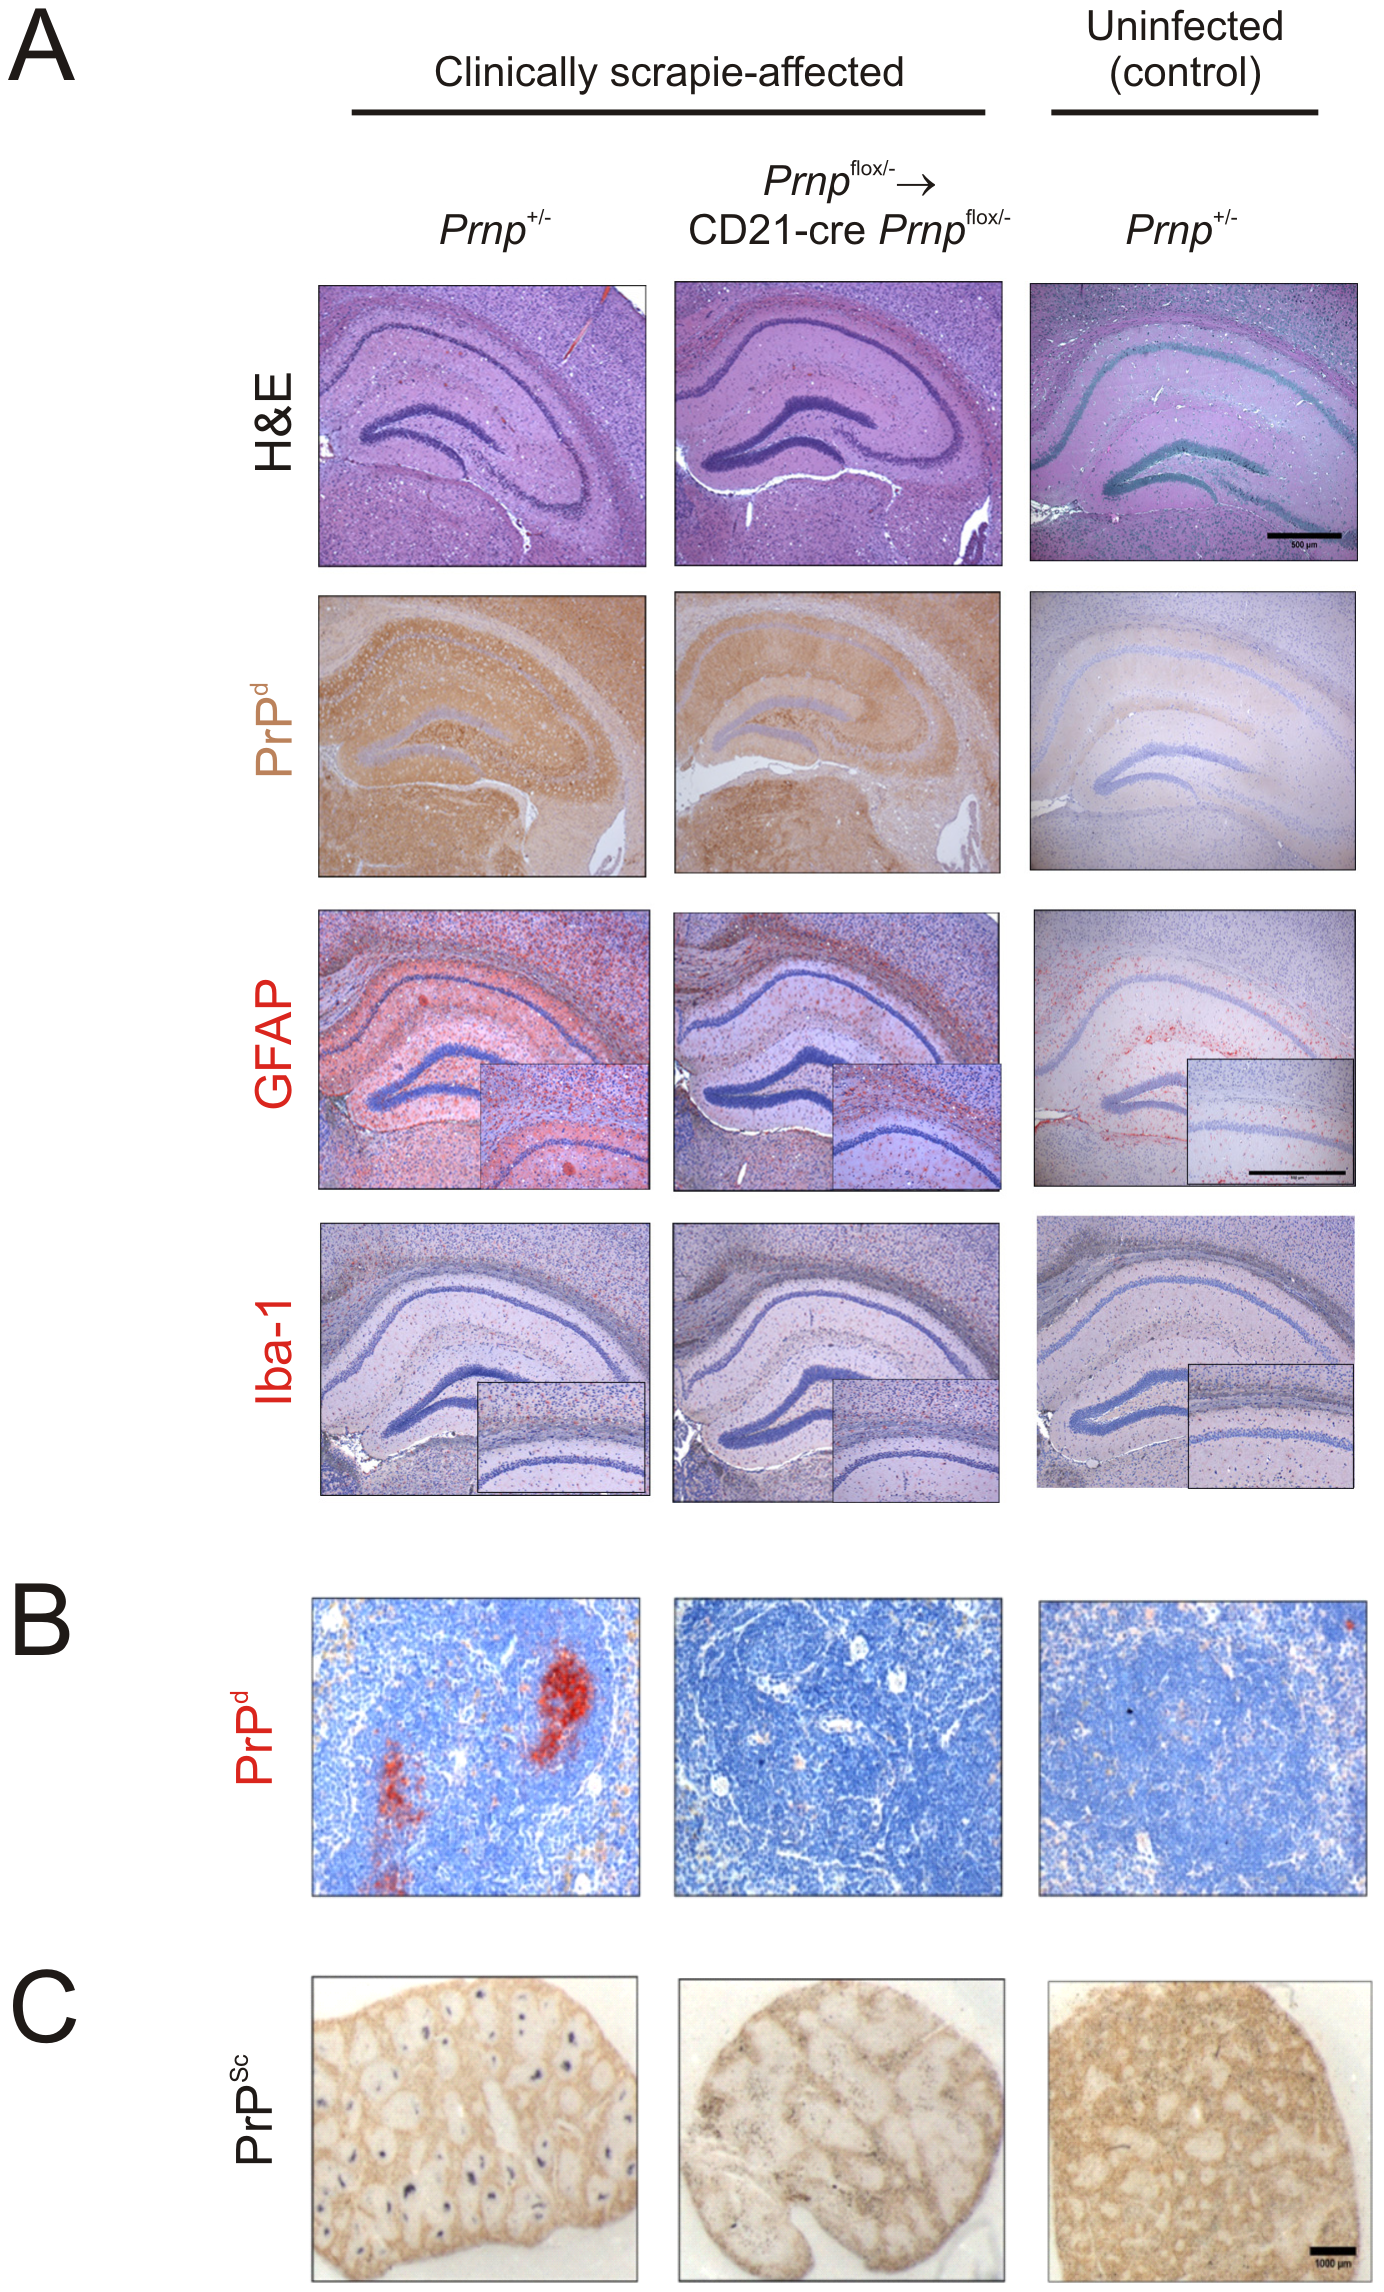 Effect of FDC-restricted PrP<sup>C</sup>-ablation on PrP<sup>Sc</sup> accumulation in the brains and spleens of scrapie-affected mice.